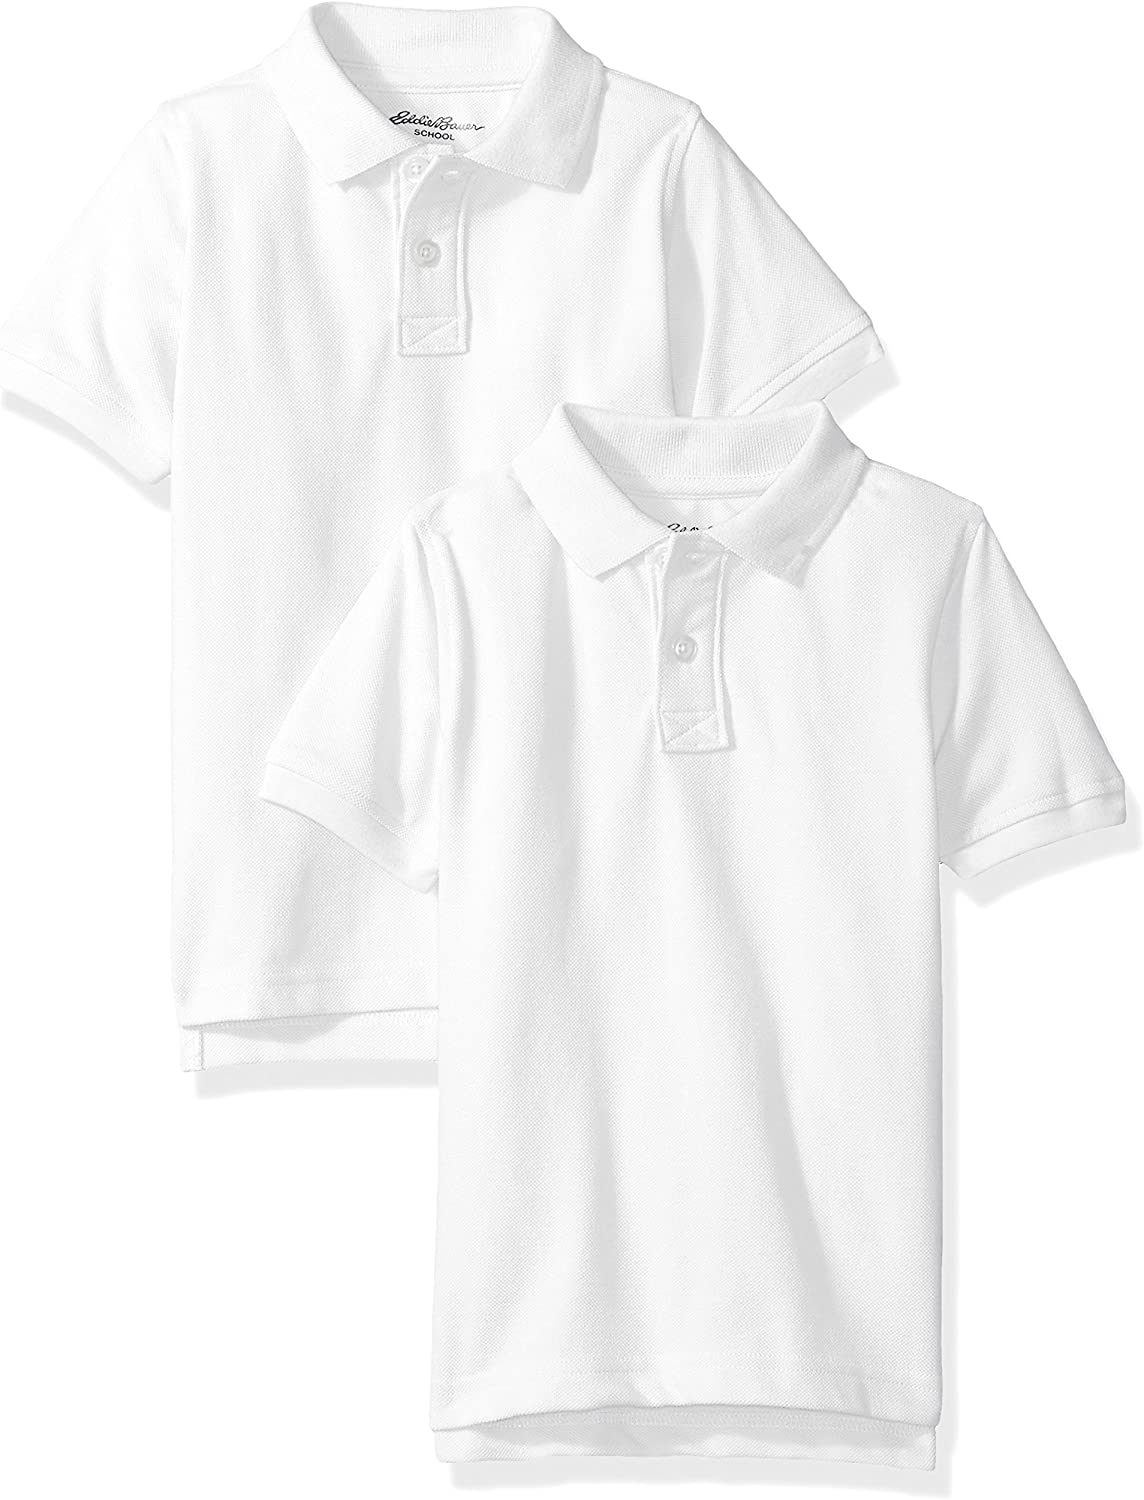 Eddie Bauer Boys' 2 Pack Polo Shirt (More Styles Available)